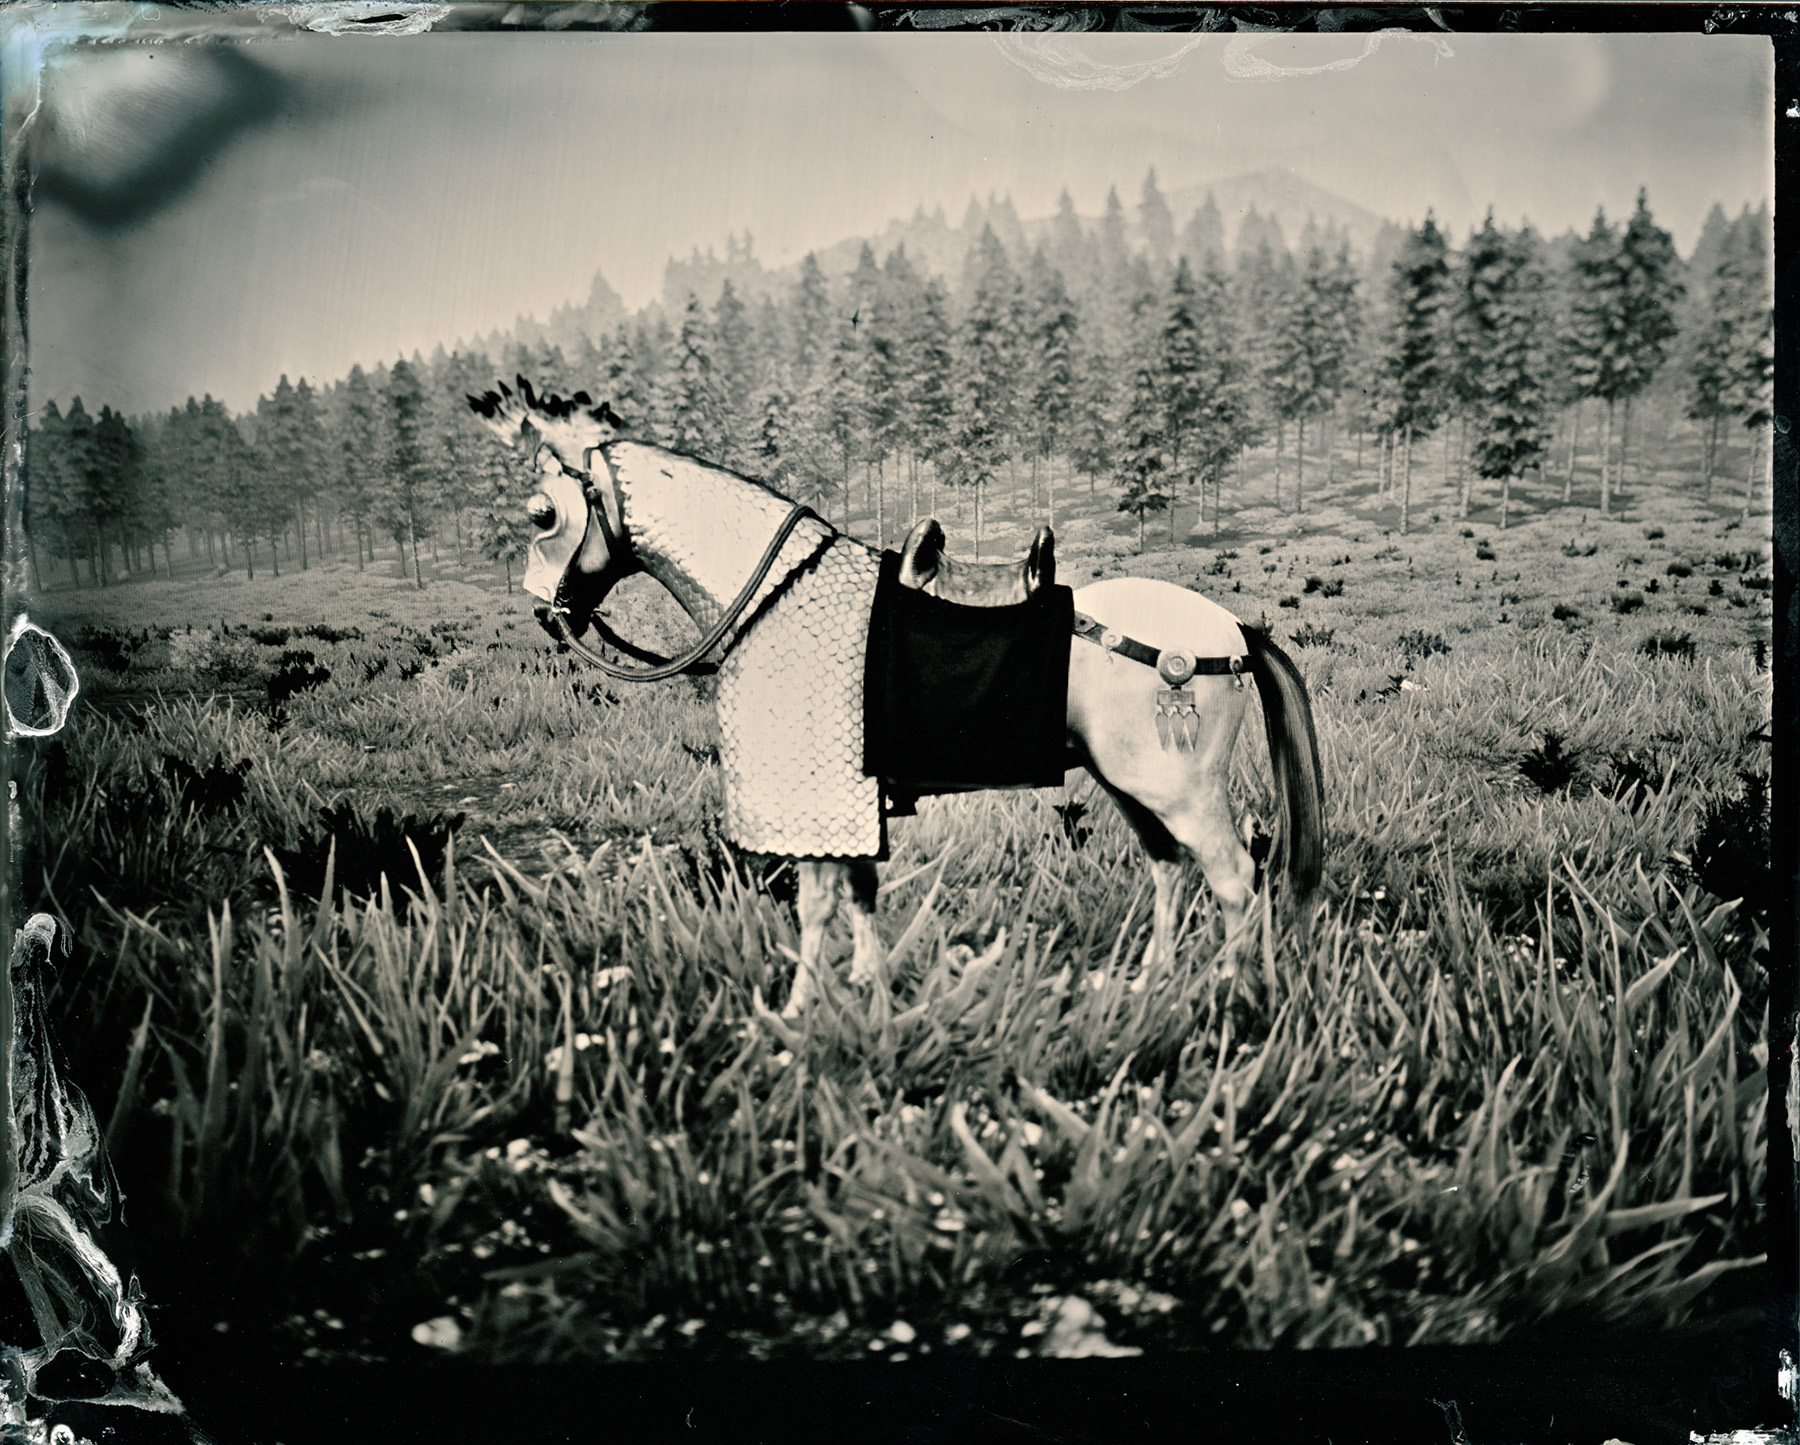 A black-and-white horse in a field.